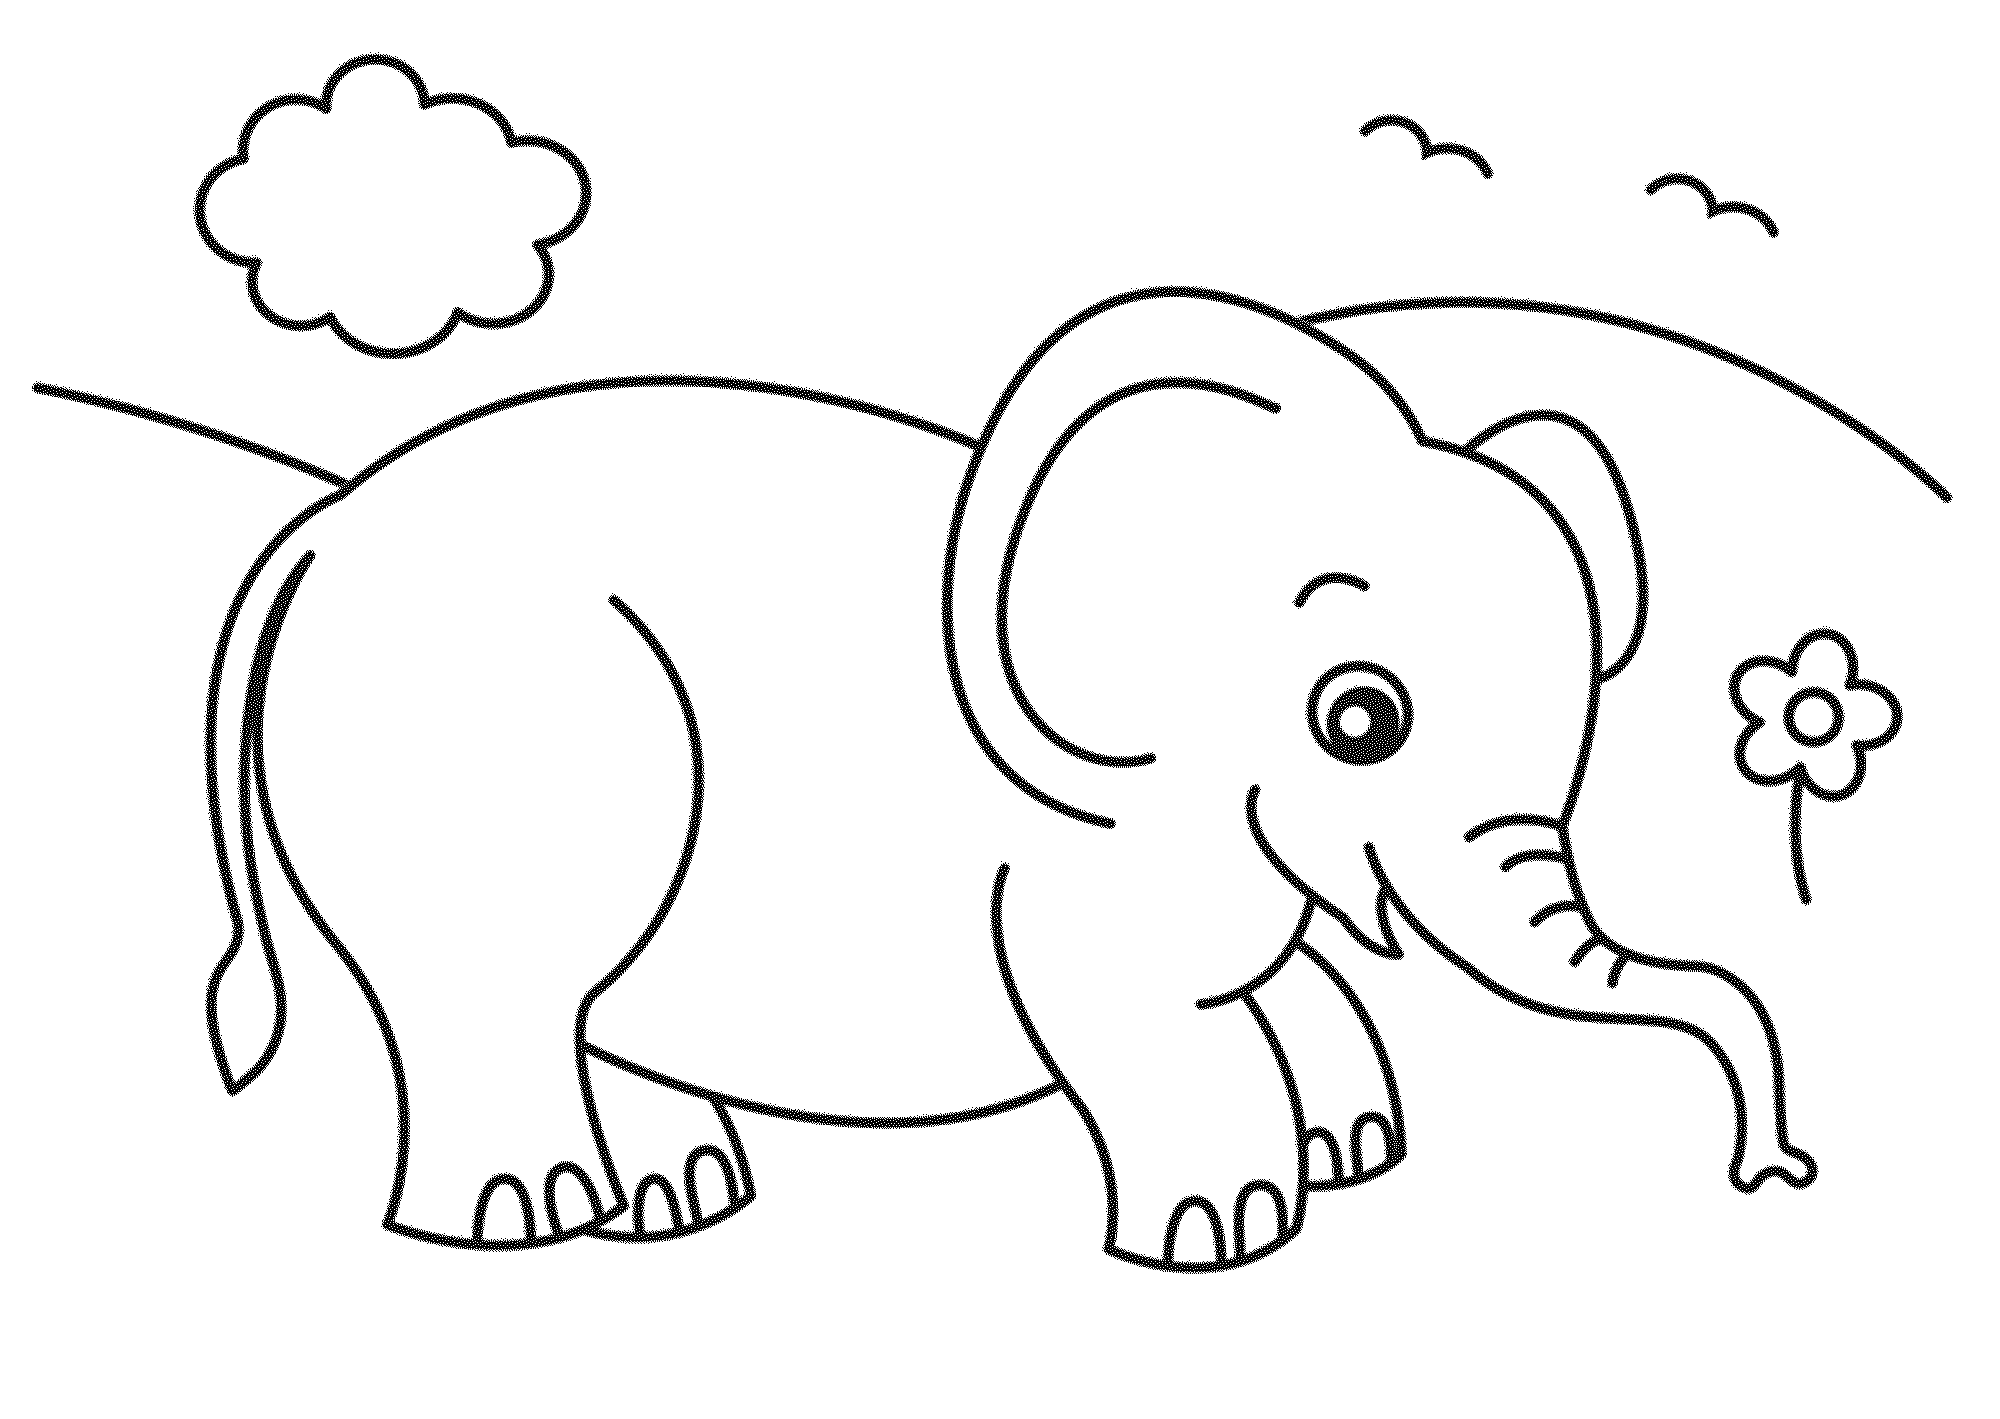 coloring book elephant images print download teaching kids through elephant coloring images book coloring elephant